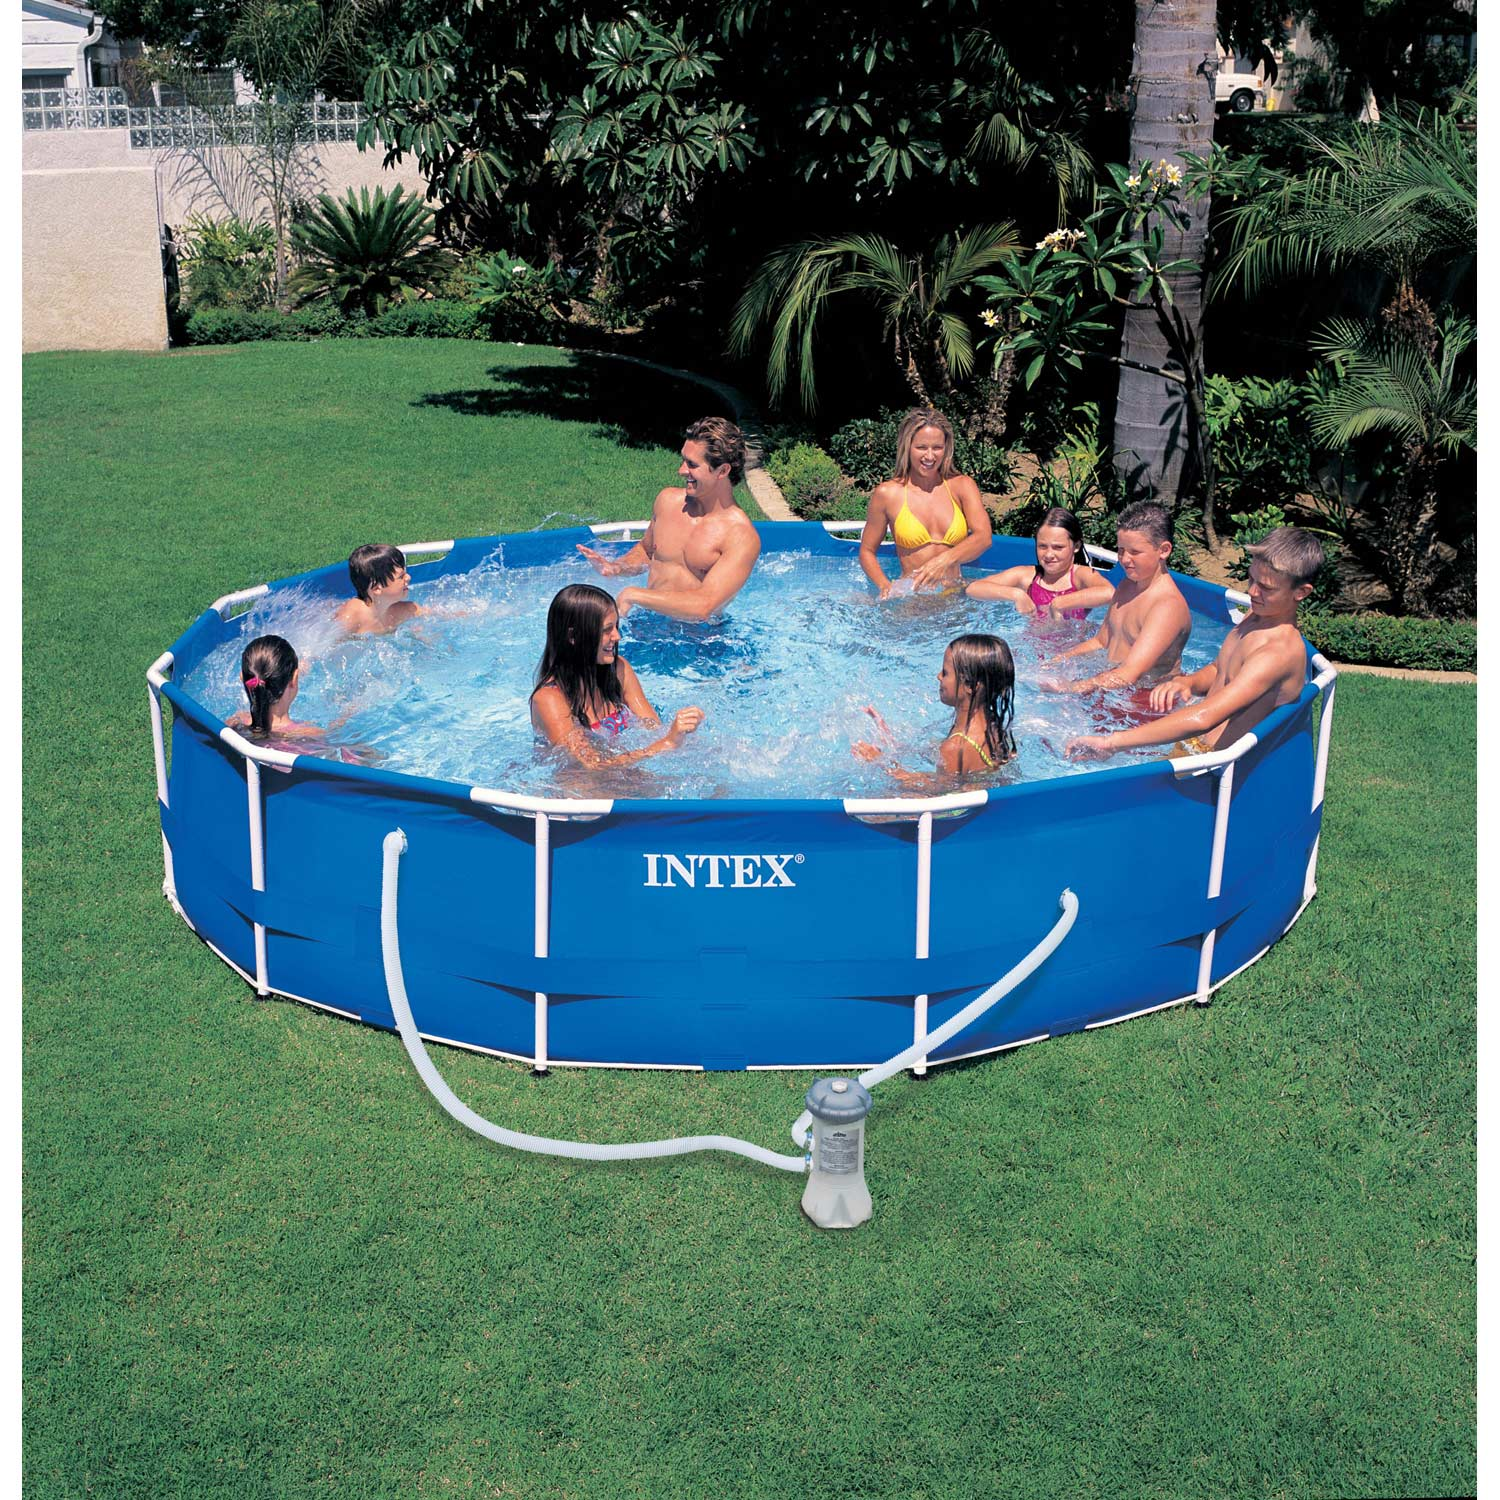 Piscine hors sol autoportante tubulaire m tal frame intex for Rustine pour piscine intex